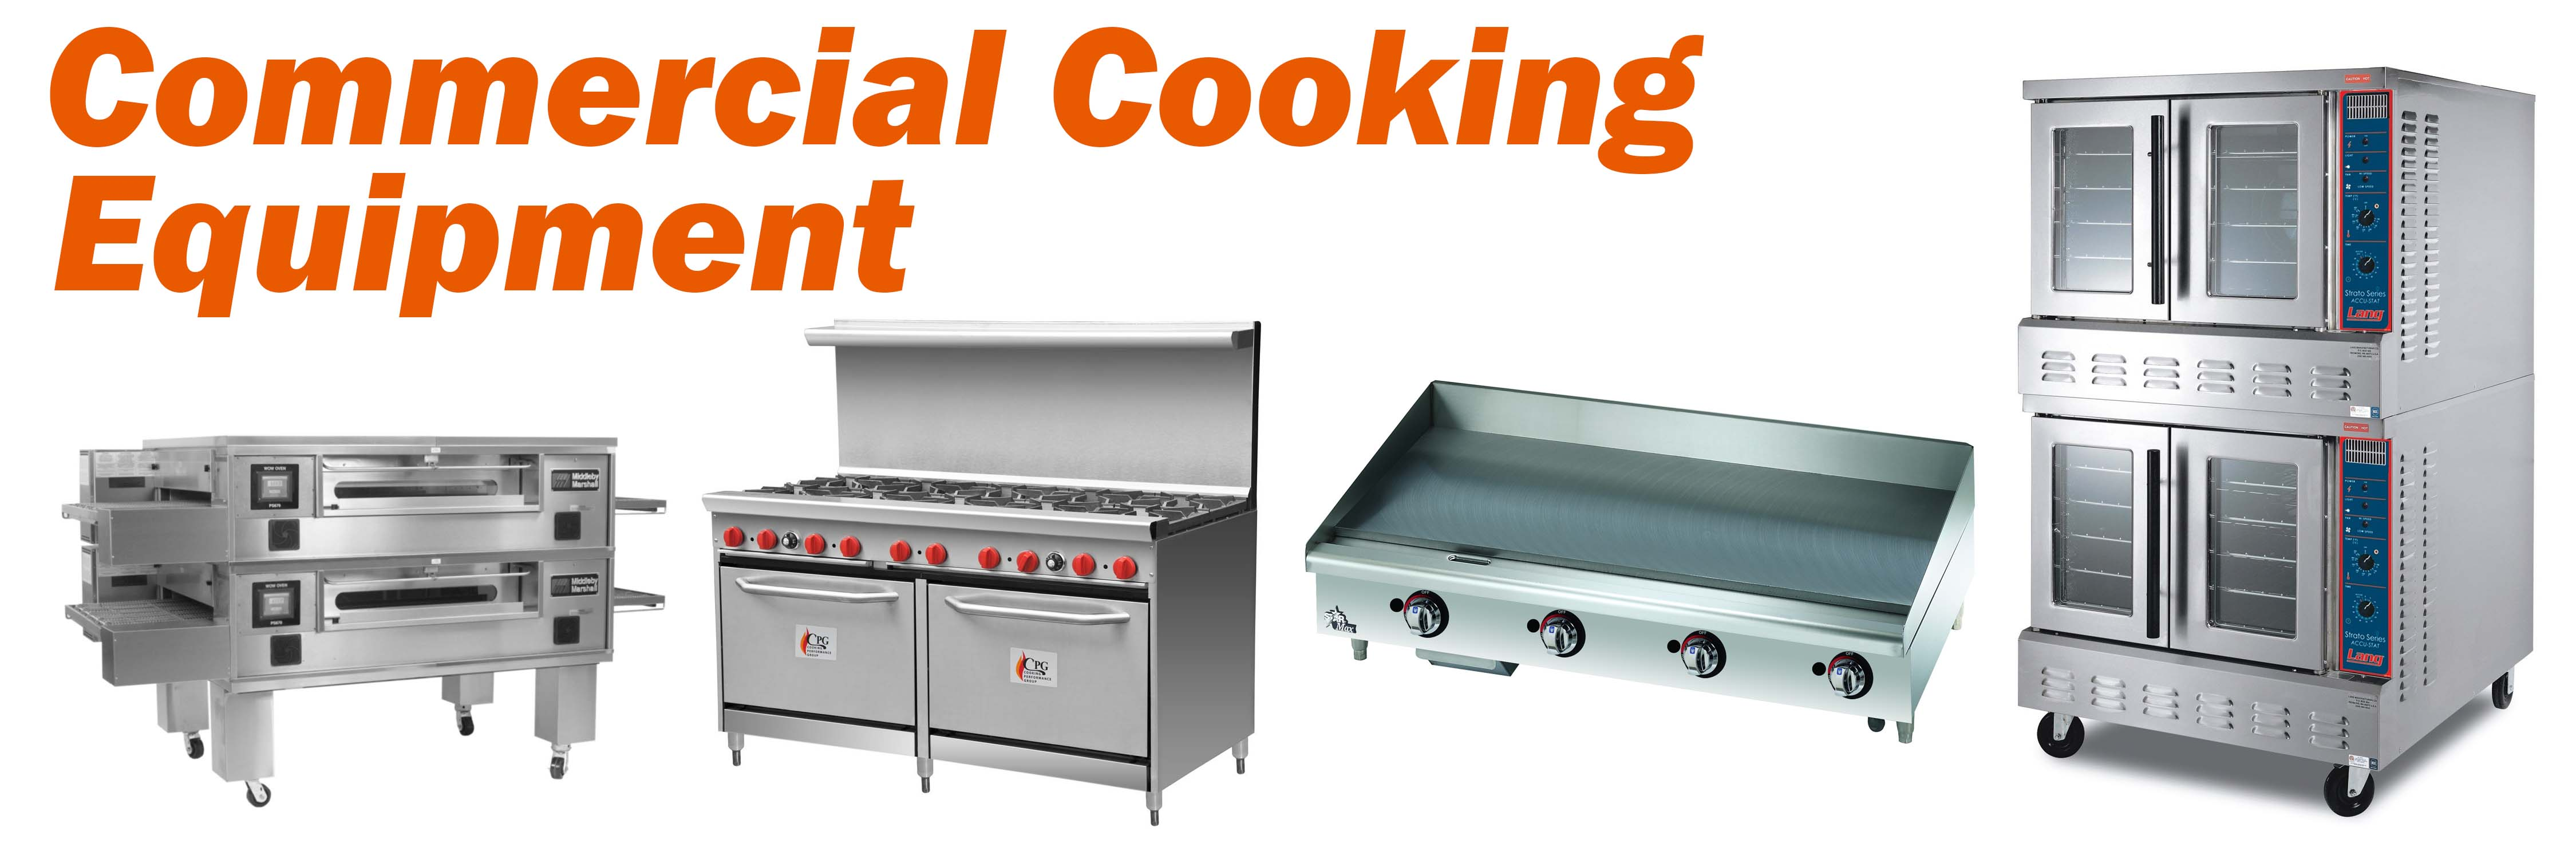 PURS Cooking Equipment JPG